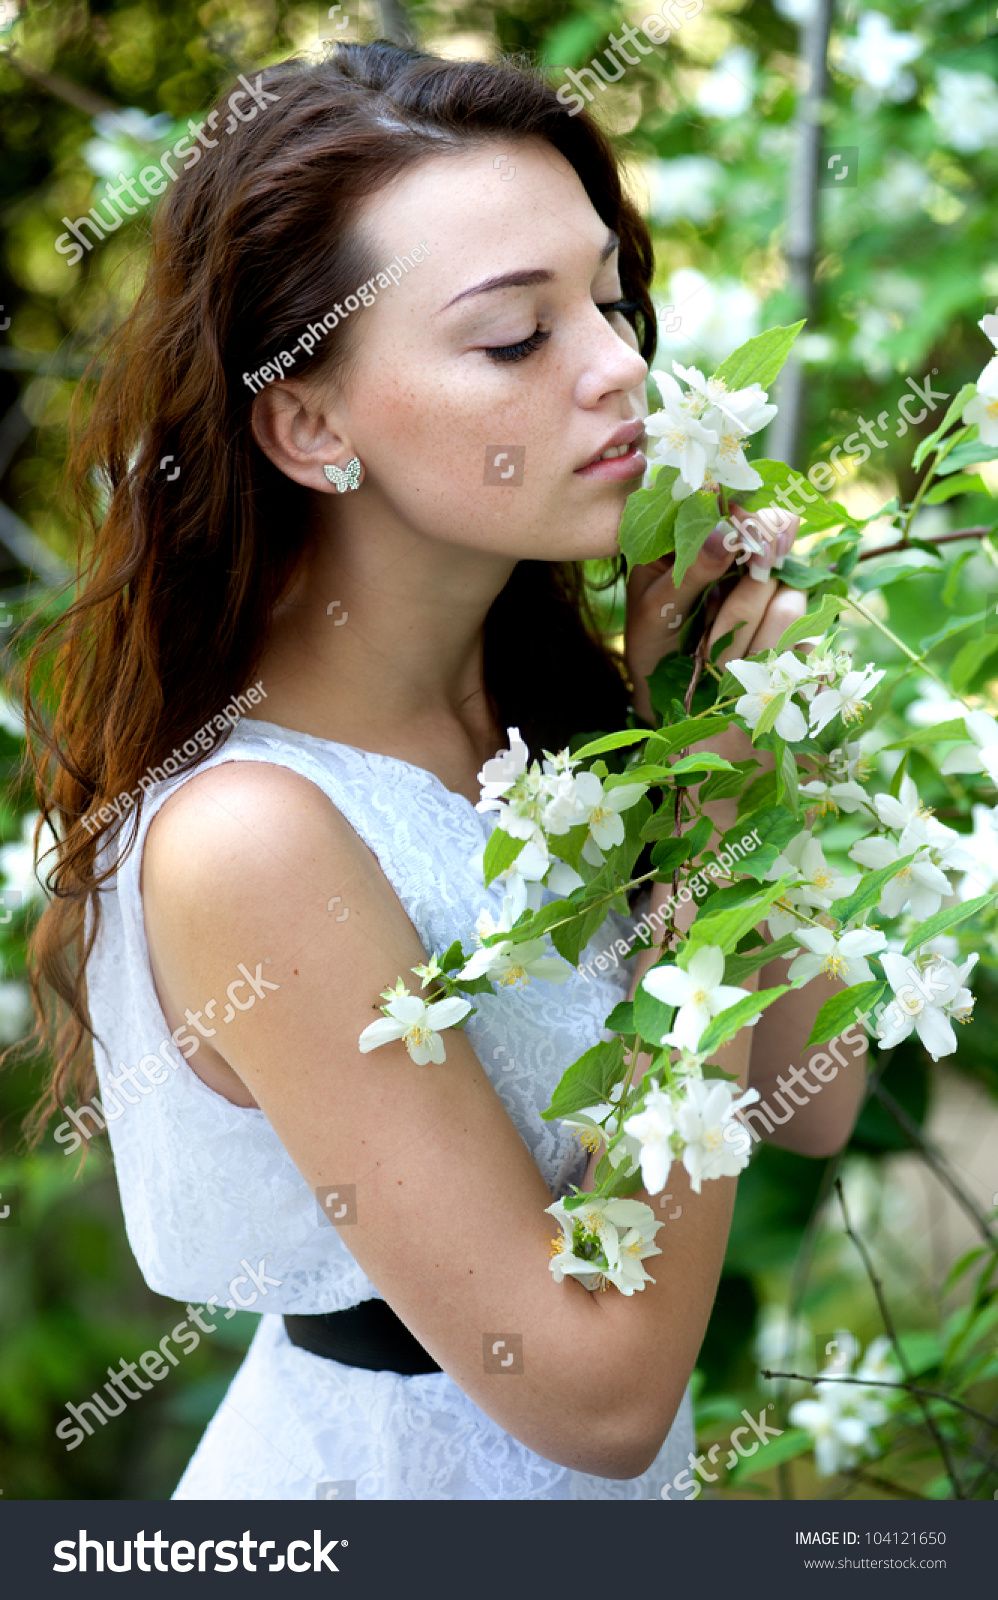 Beautiful girl sniffing jasmine flowers garden stock photo edit now beautiful girl sniffing jasmine flowers in the garden izmirmasajfo